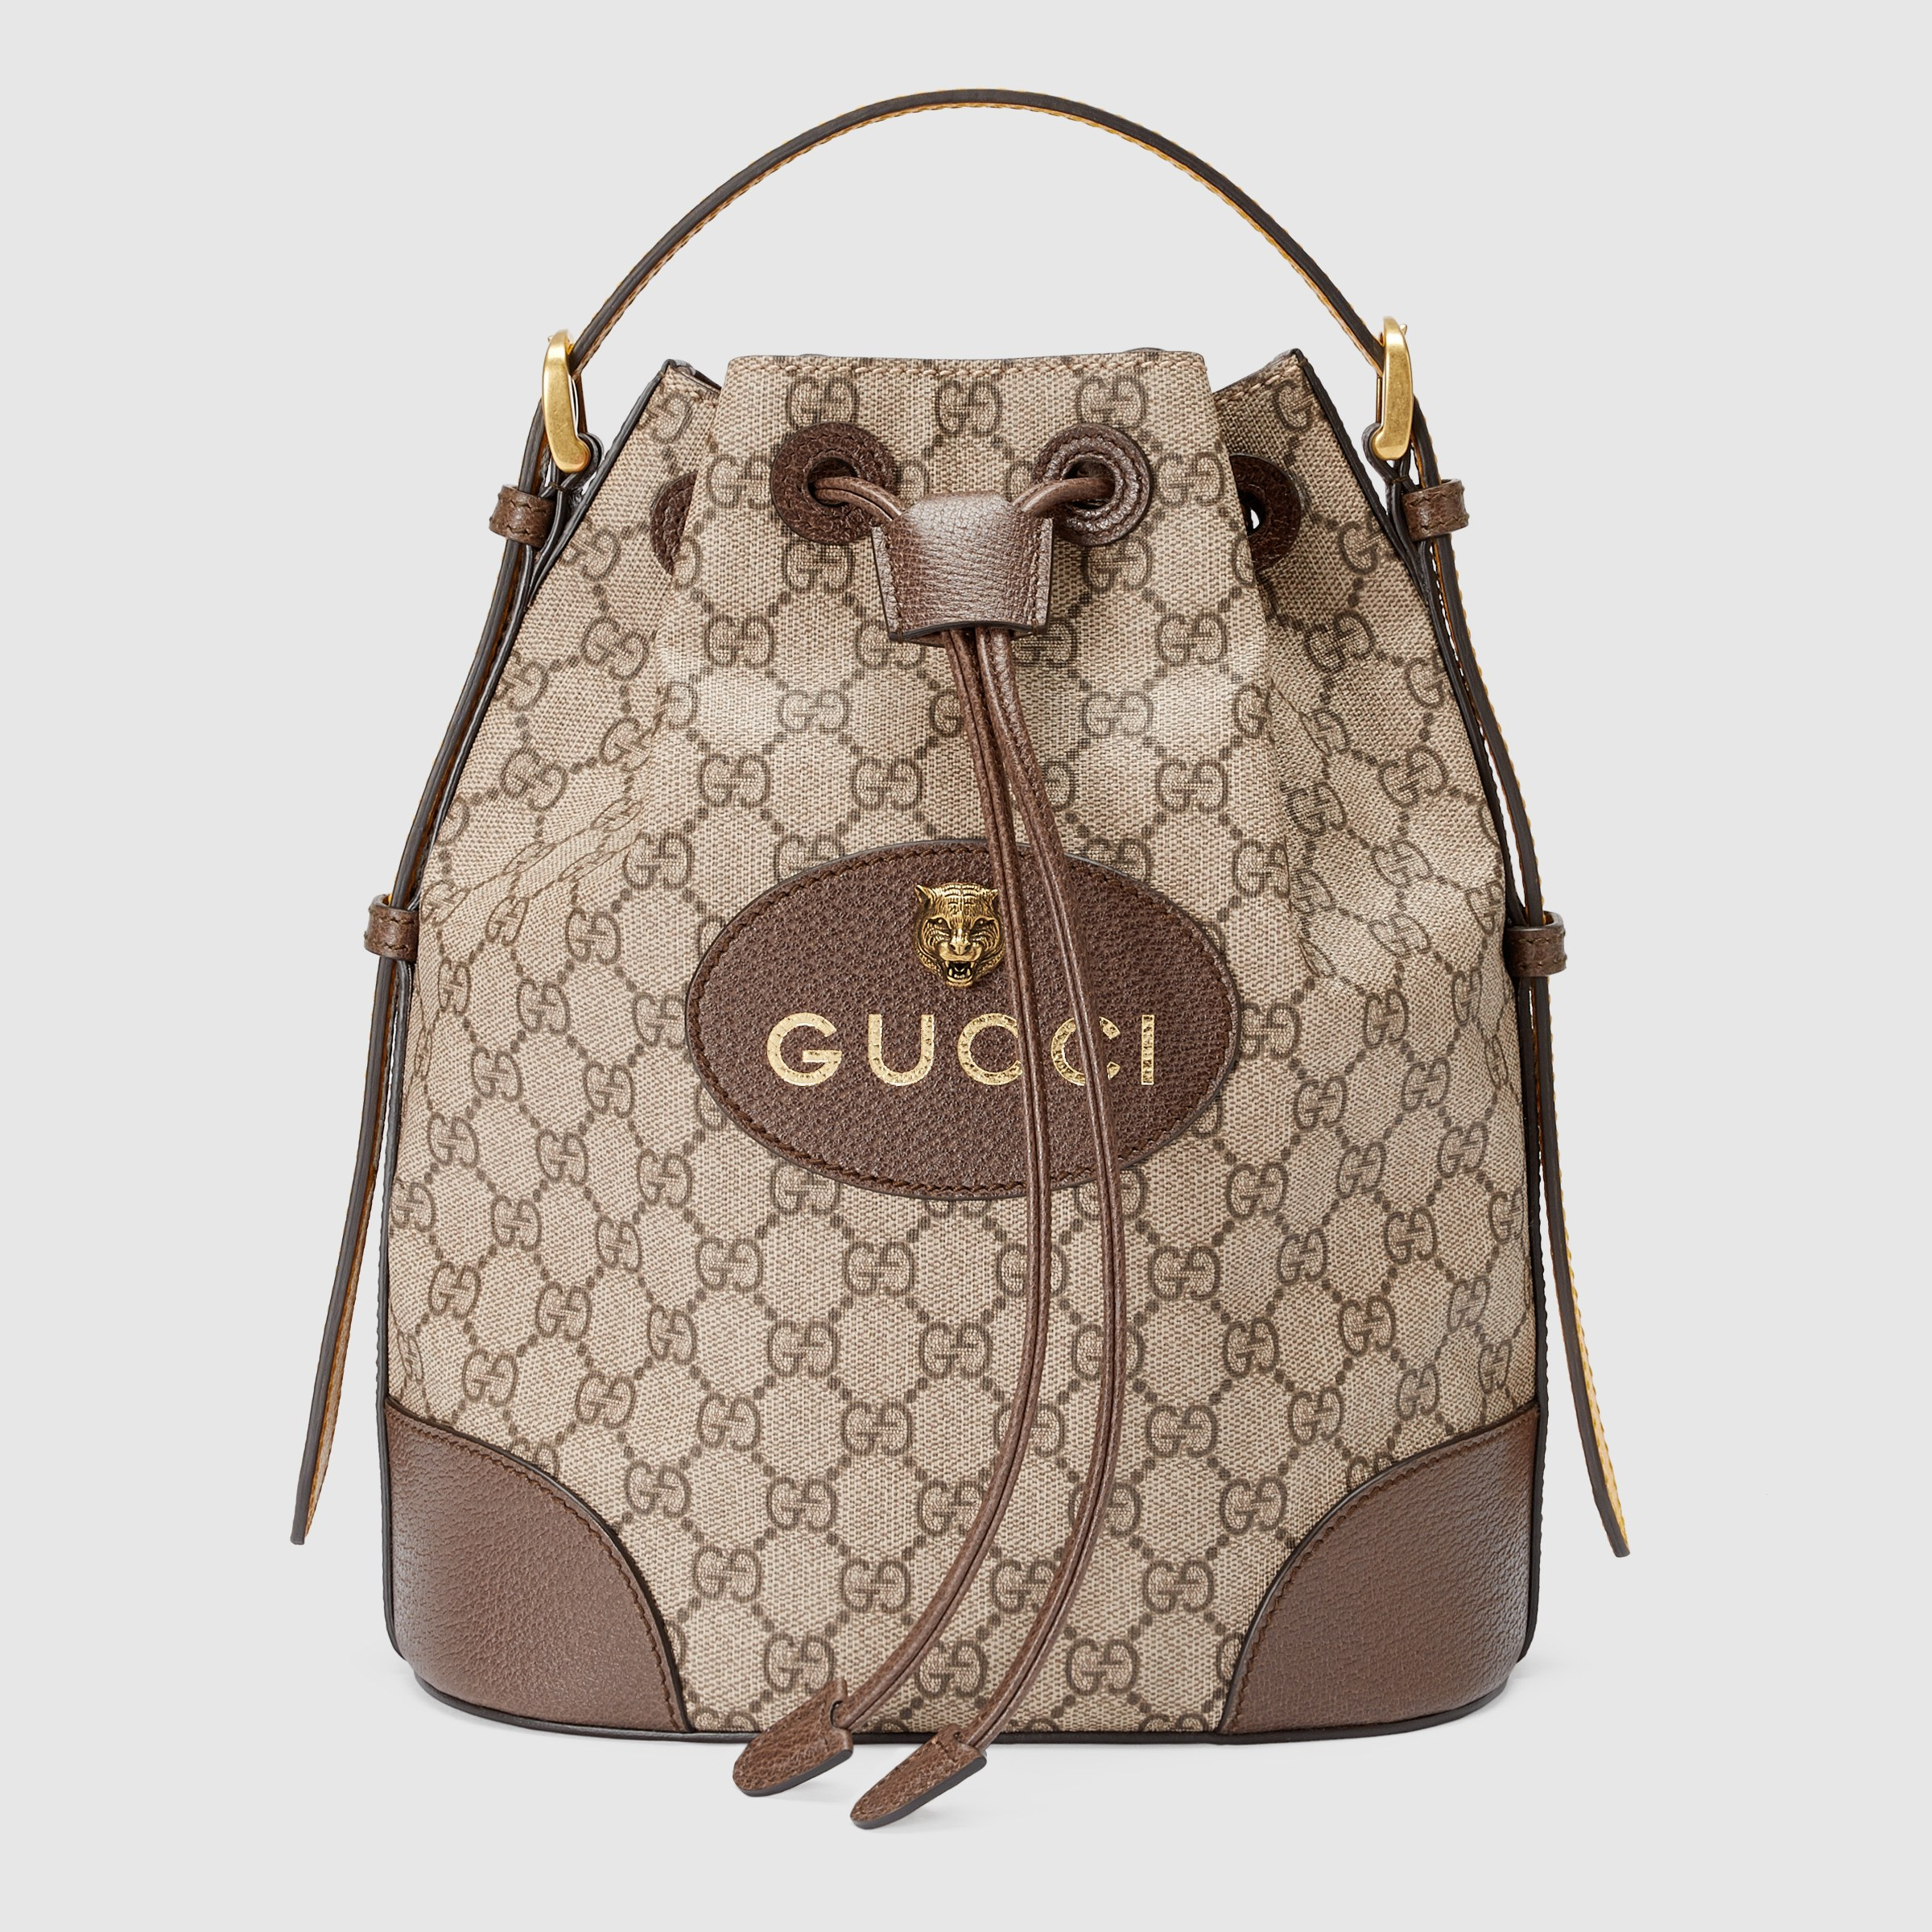 Gucci Neo Vintage GG Supreme Backpack 473875 Brown Leather